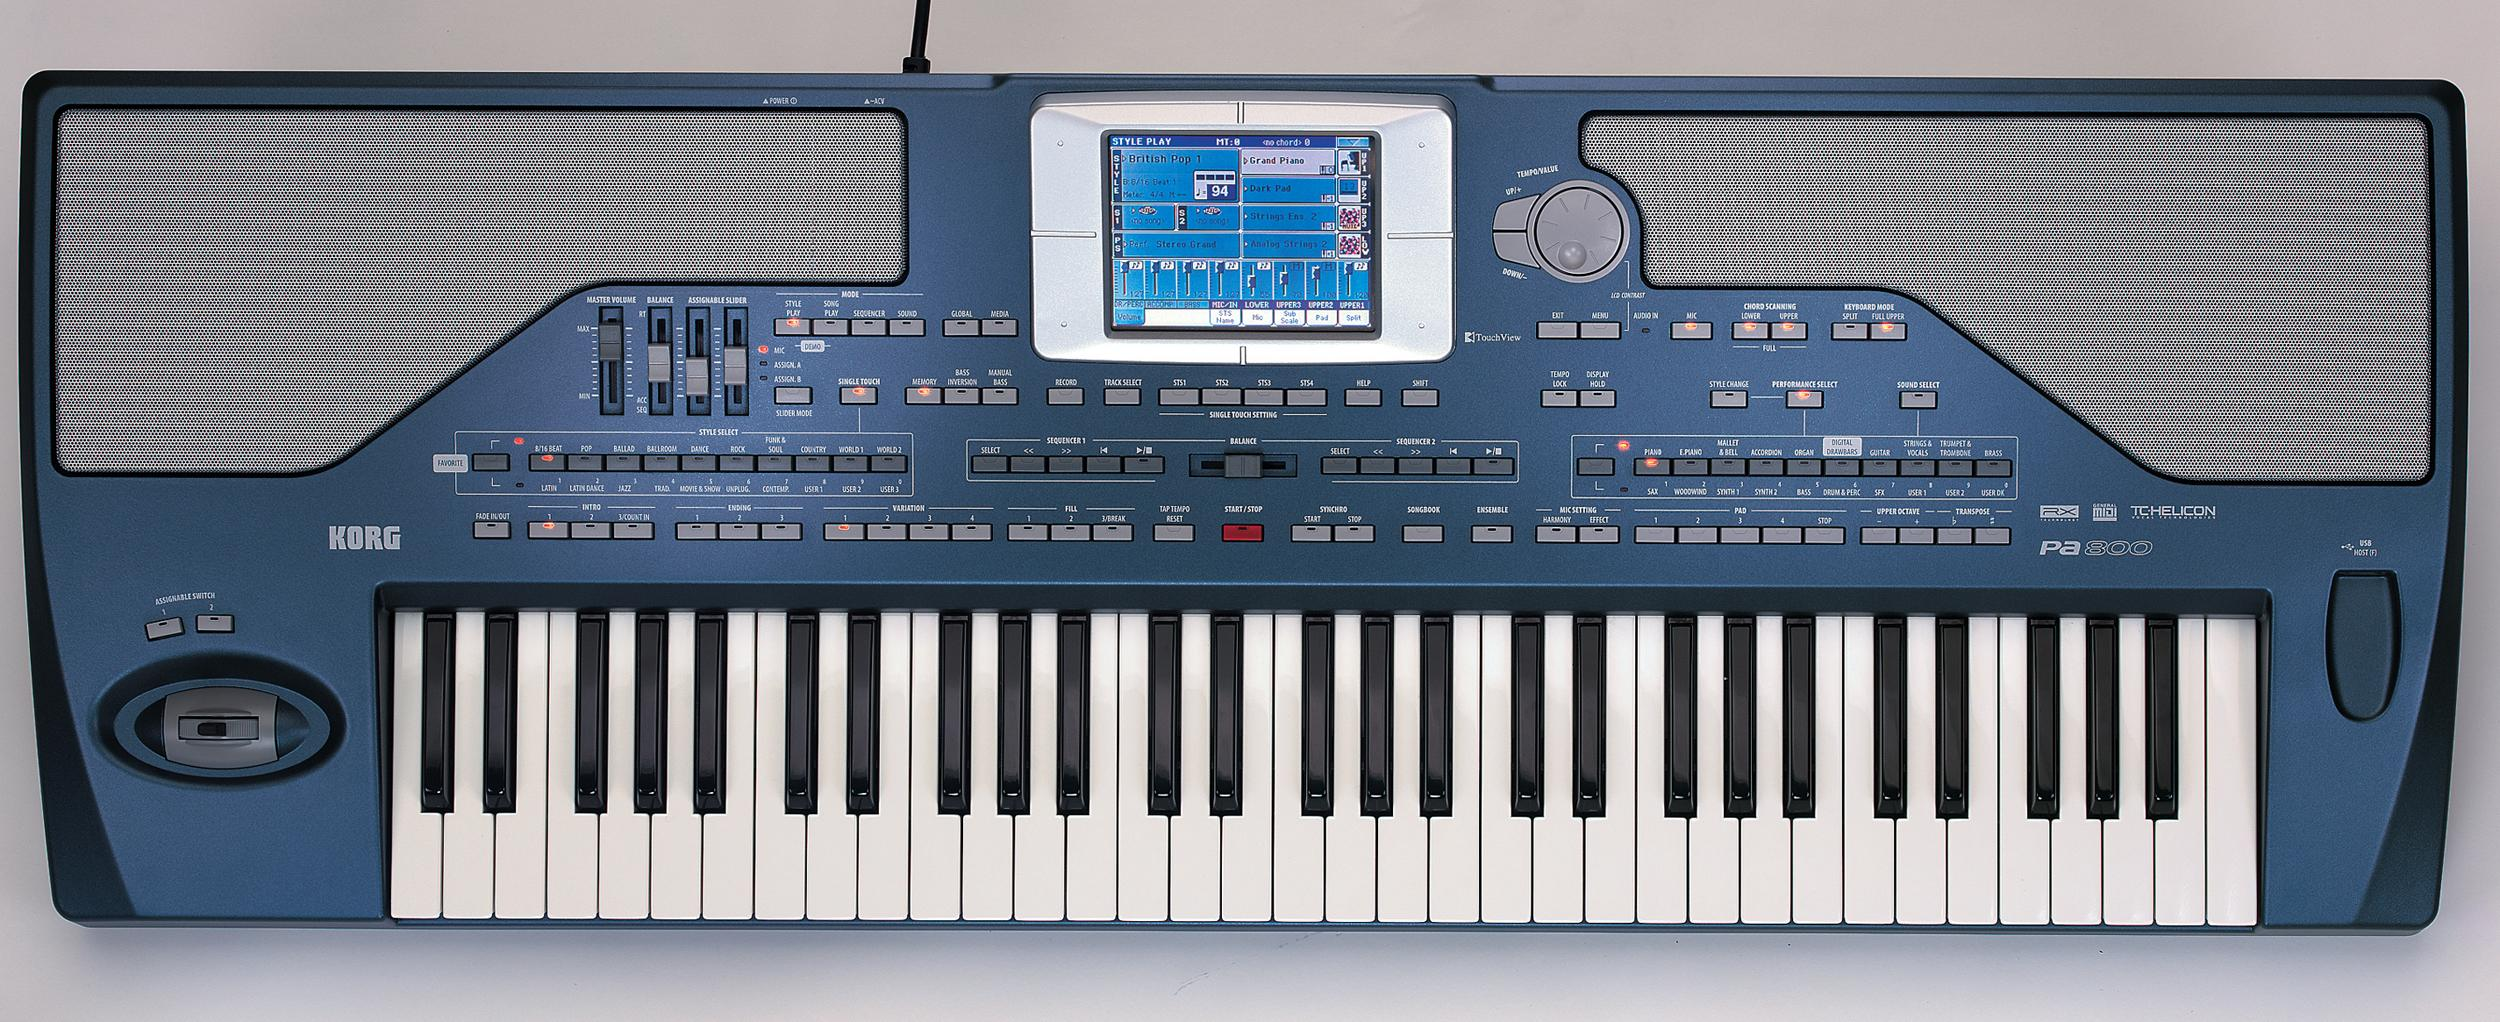 Korg pa800 pro arranger for Yamaha professional keyboard price